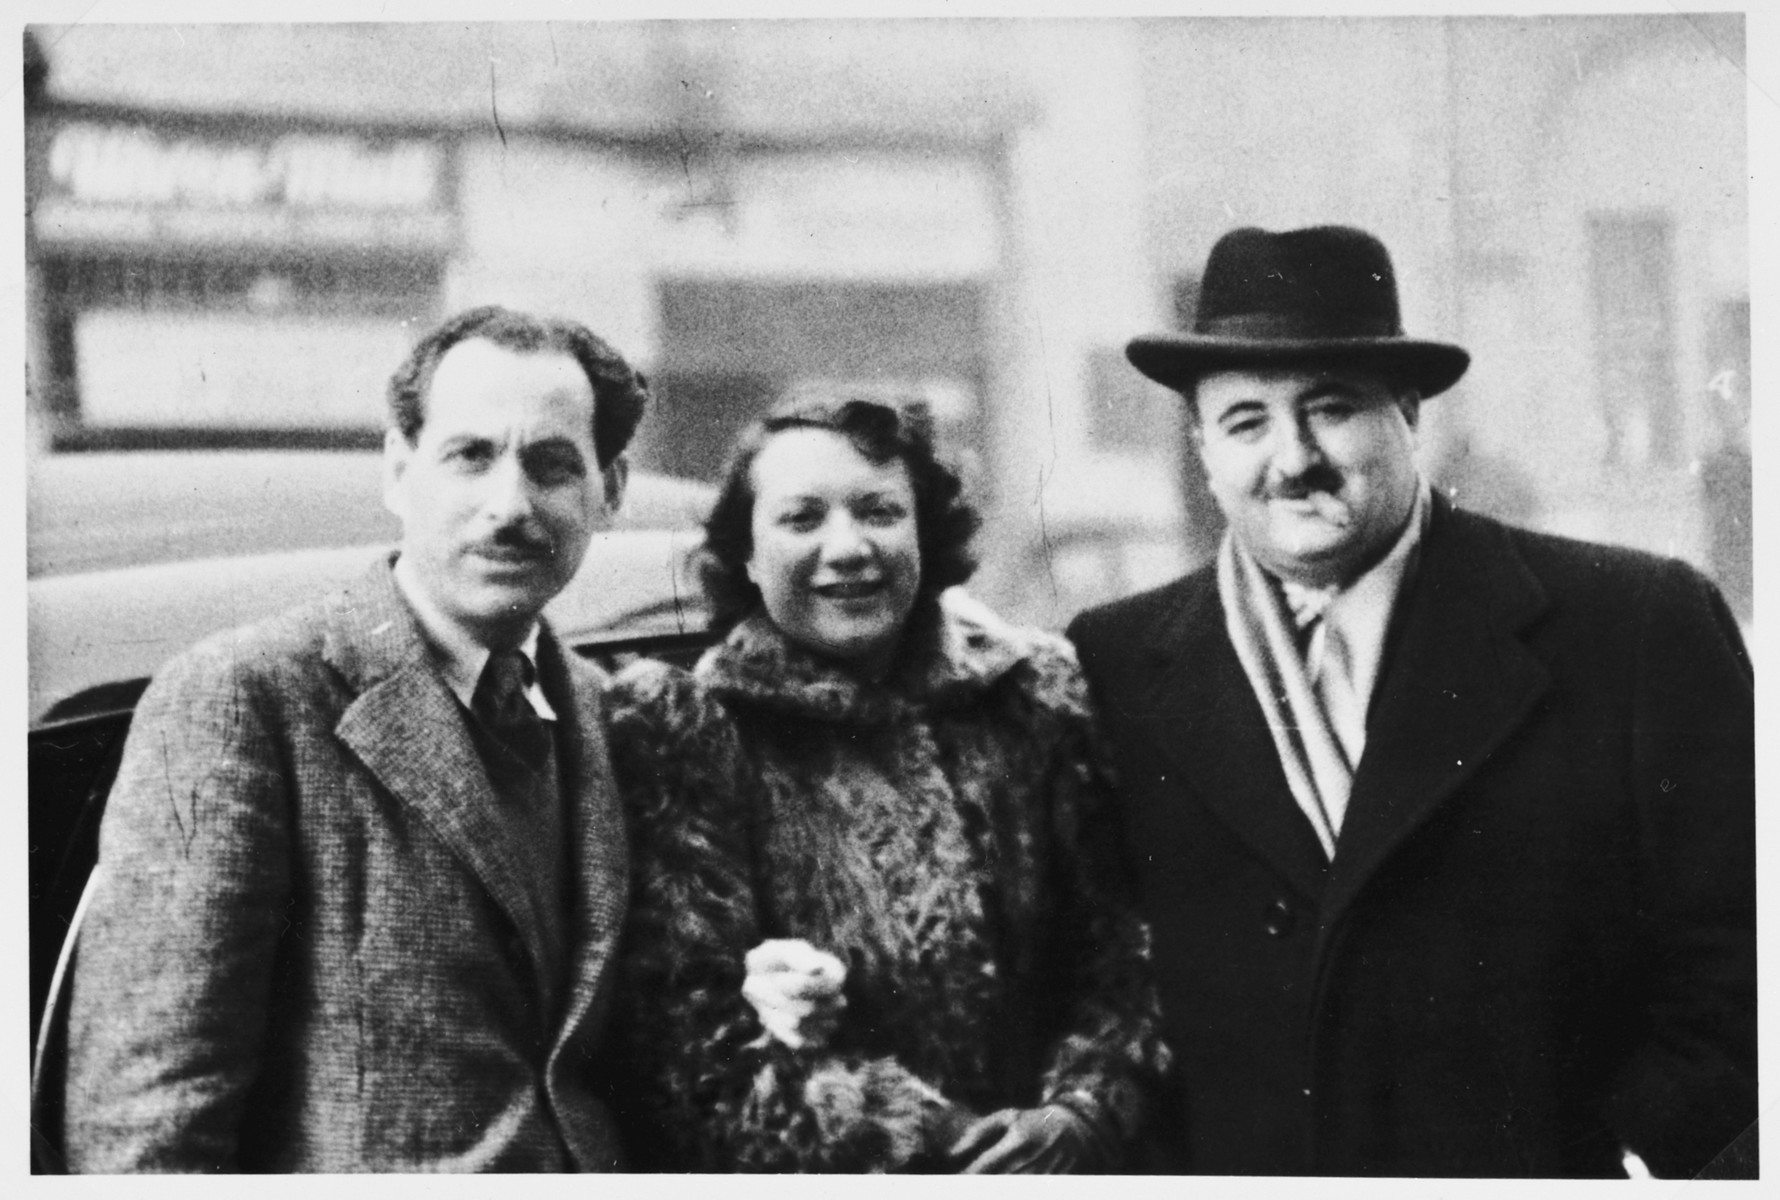 A delegation of Canadian Jews visits the displaced persons' camps to facilitate immigration to Canada.  From left to right are David Siegel, Lottie Levinson who worked with children and Bernard Berger from the Furrier's Union.